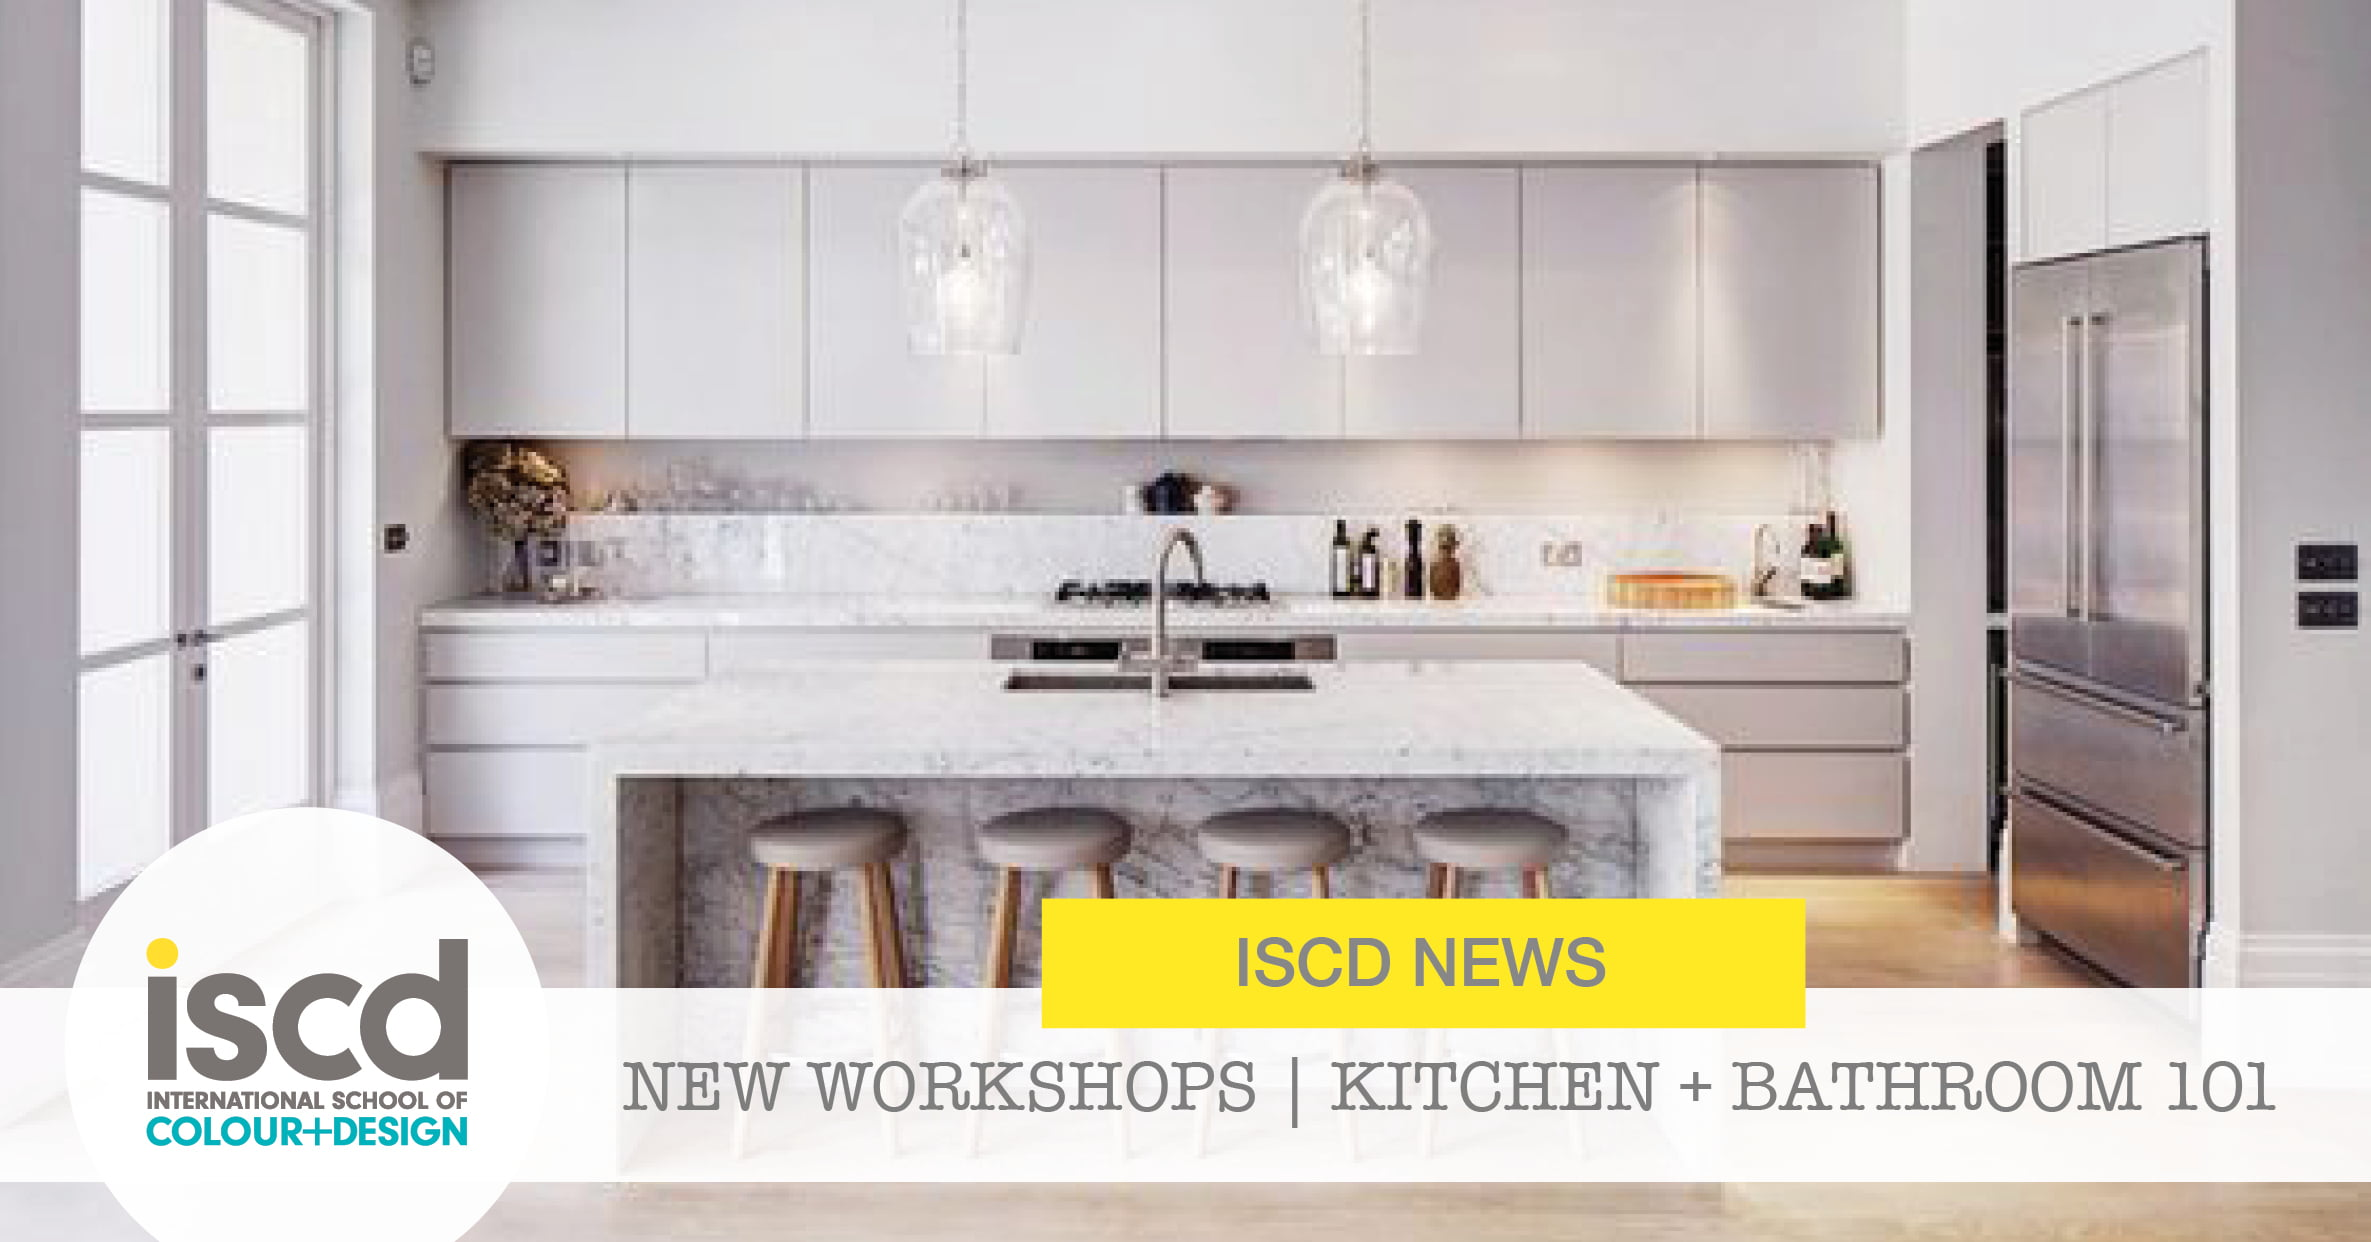 This series includes workshops focused on Kitchen spaces, designing Bathrooms and our iconic Styling 101.